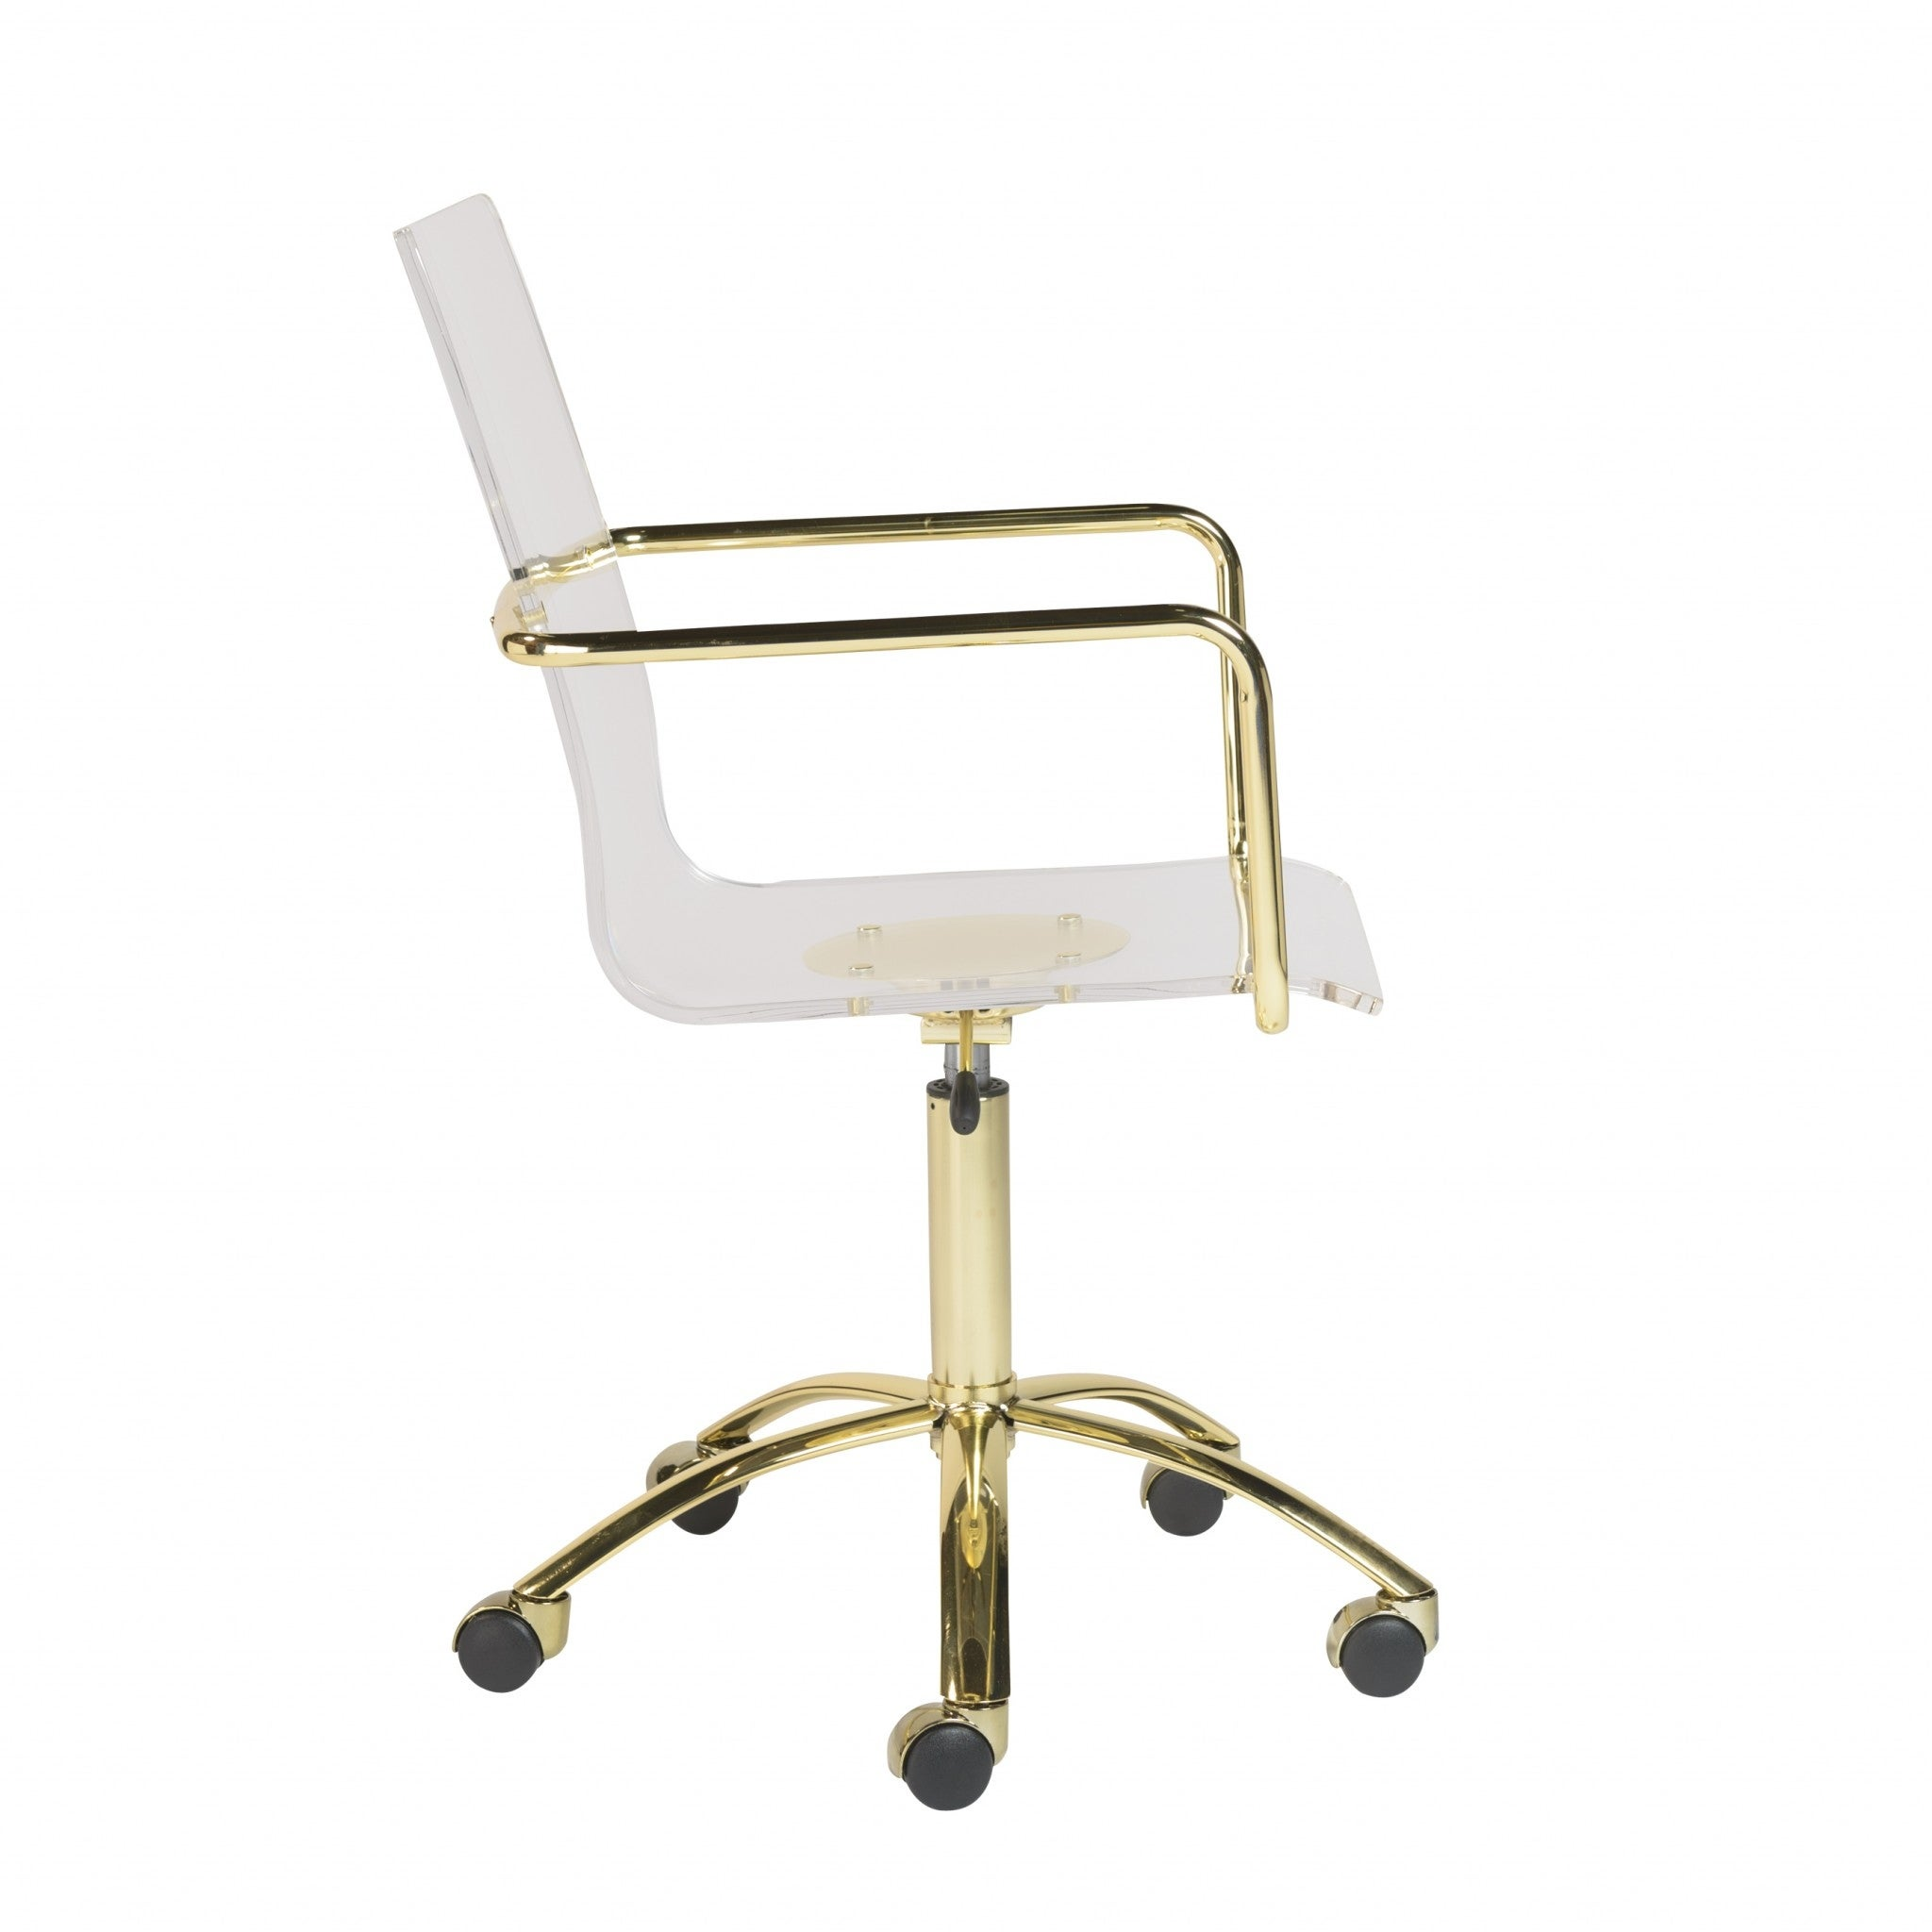 Image of: Shop Homeroots 20 52 X 22 01 X 39 49 Office Chair In Clear Acrylic With Gold Base 20 52 X 22 01 X 39 49 Overstock 31959300